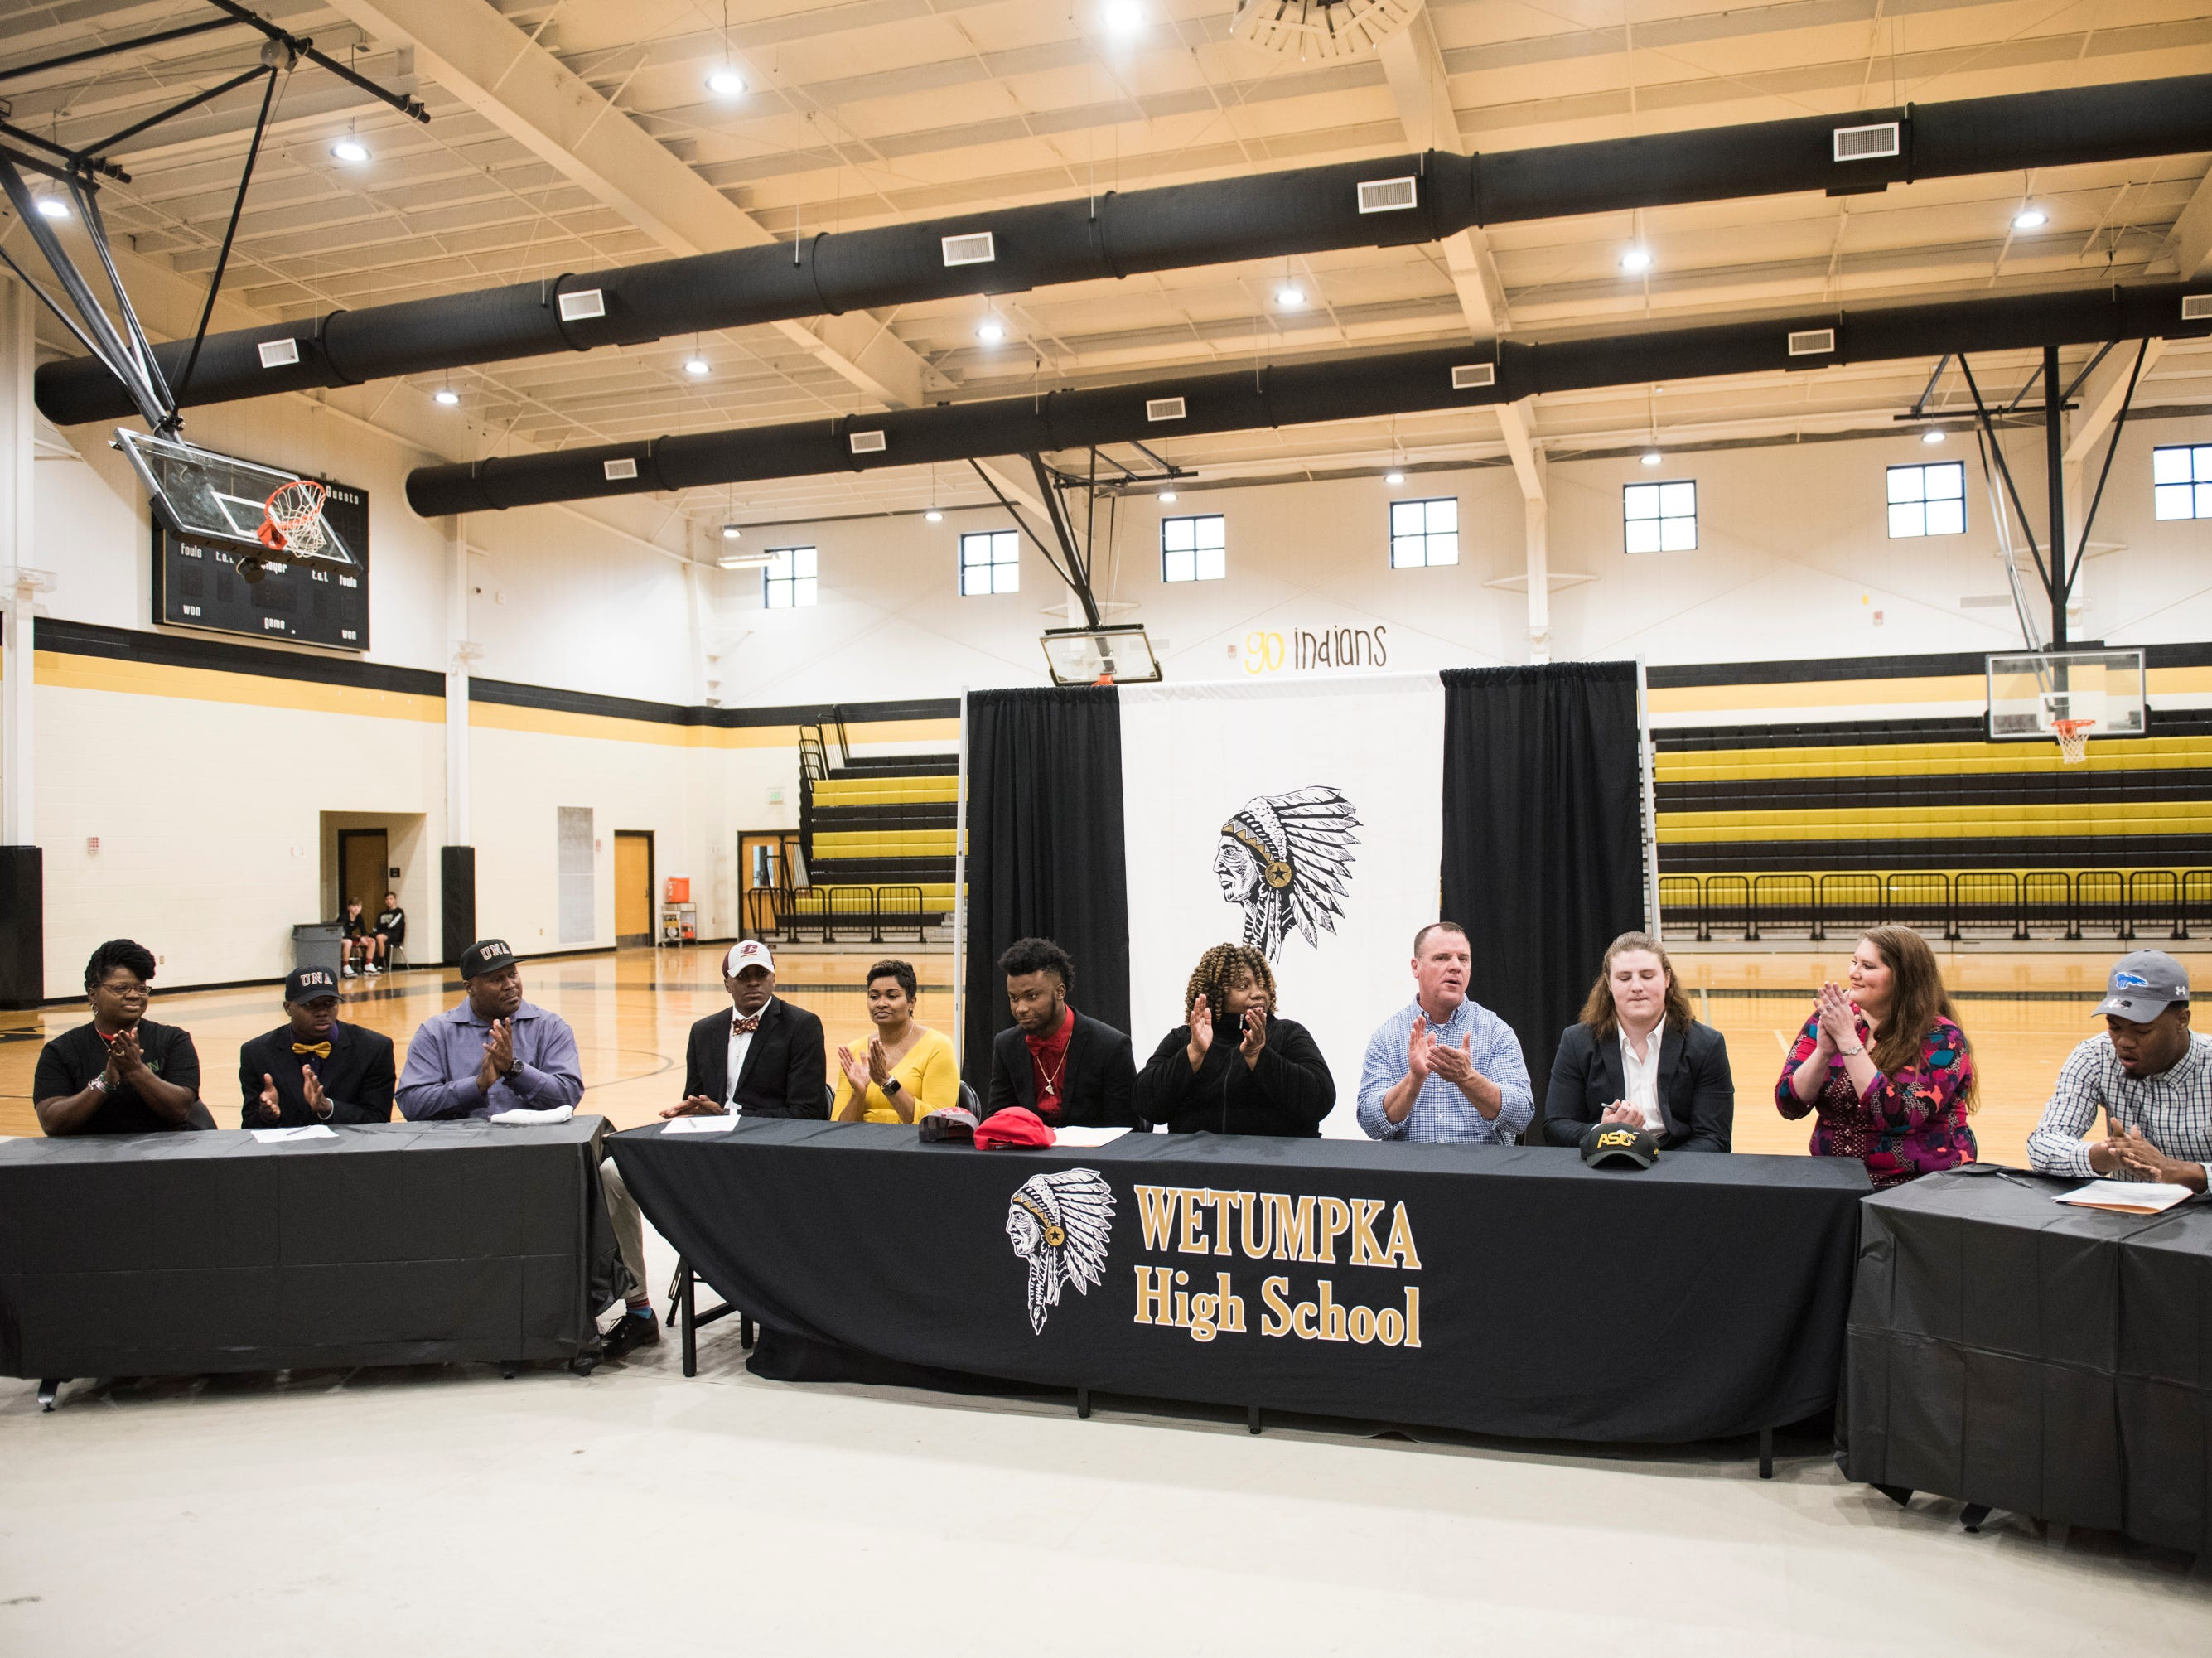 Five students sign their letter of intent during signing day at Wetumpka High School in Wetumpka, Ala., on Wednesday, Feb. 6, 2019.